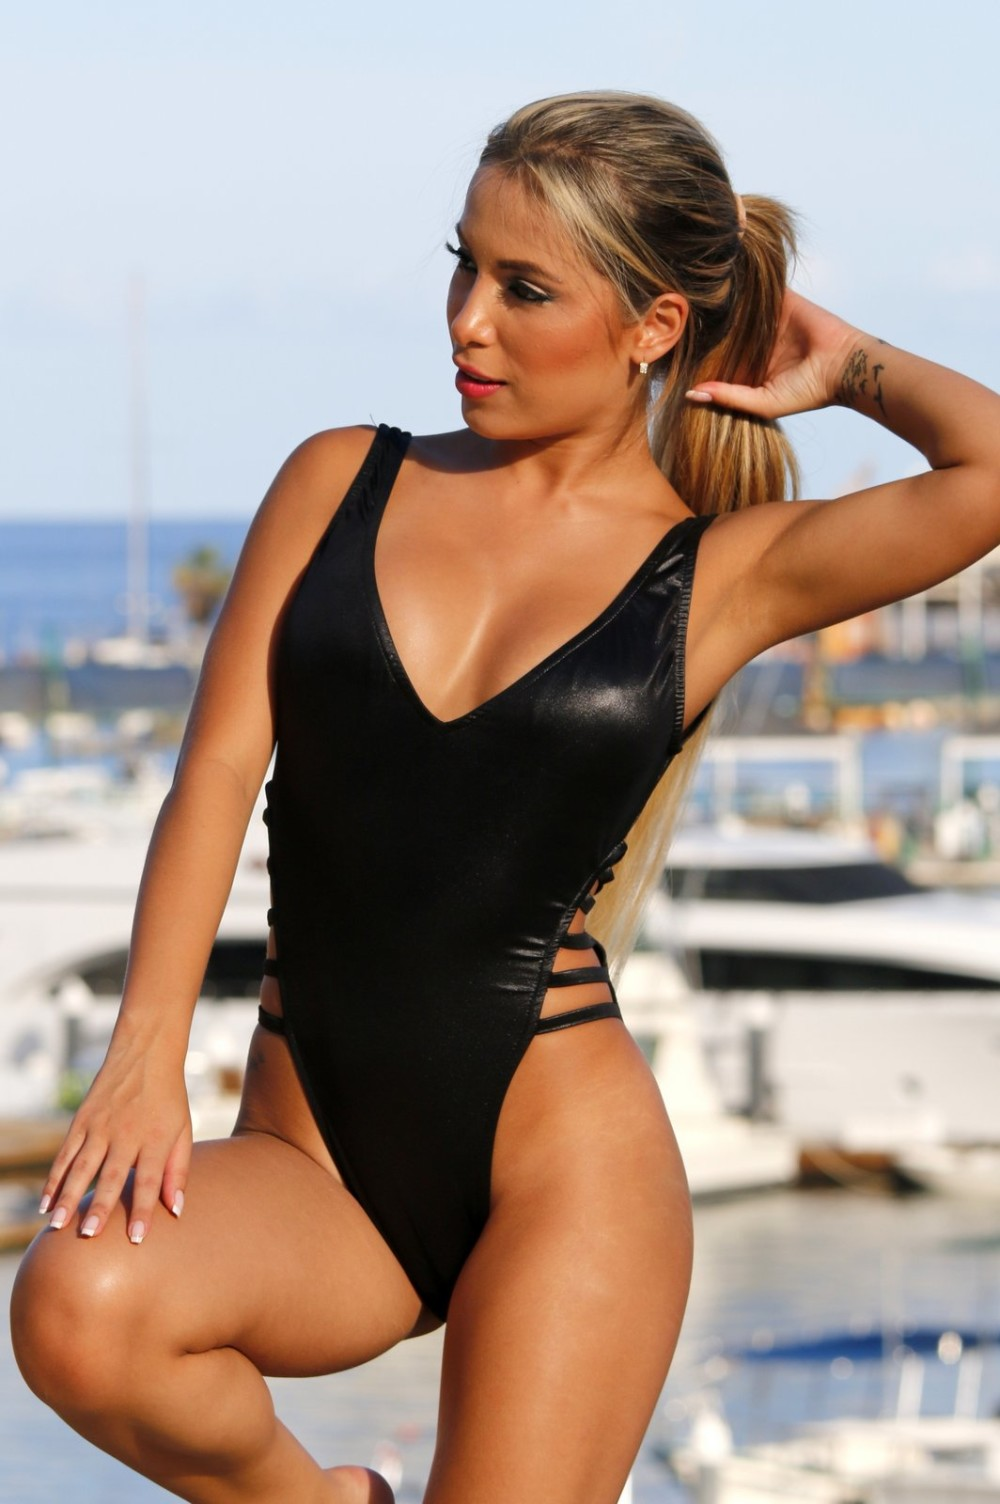 UjENA Strappy Slick High Cut One Piece Swimsuit. FREE Shipping ... 917c55d79d07